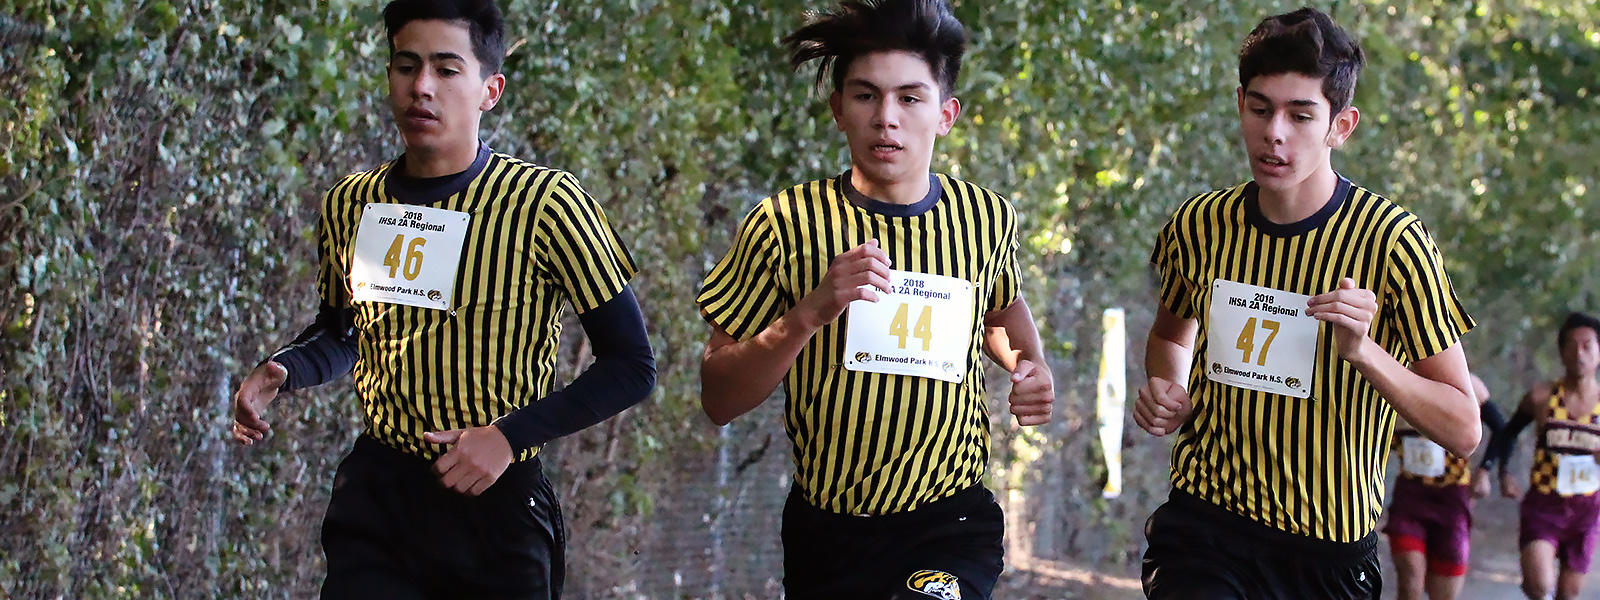 EPHS runners head toward a regional championship.